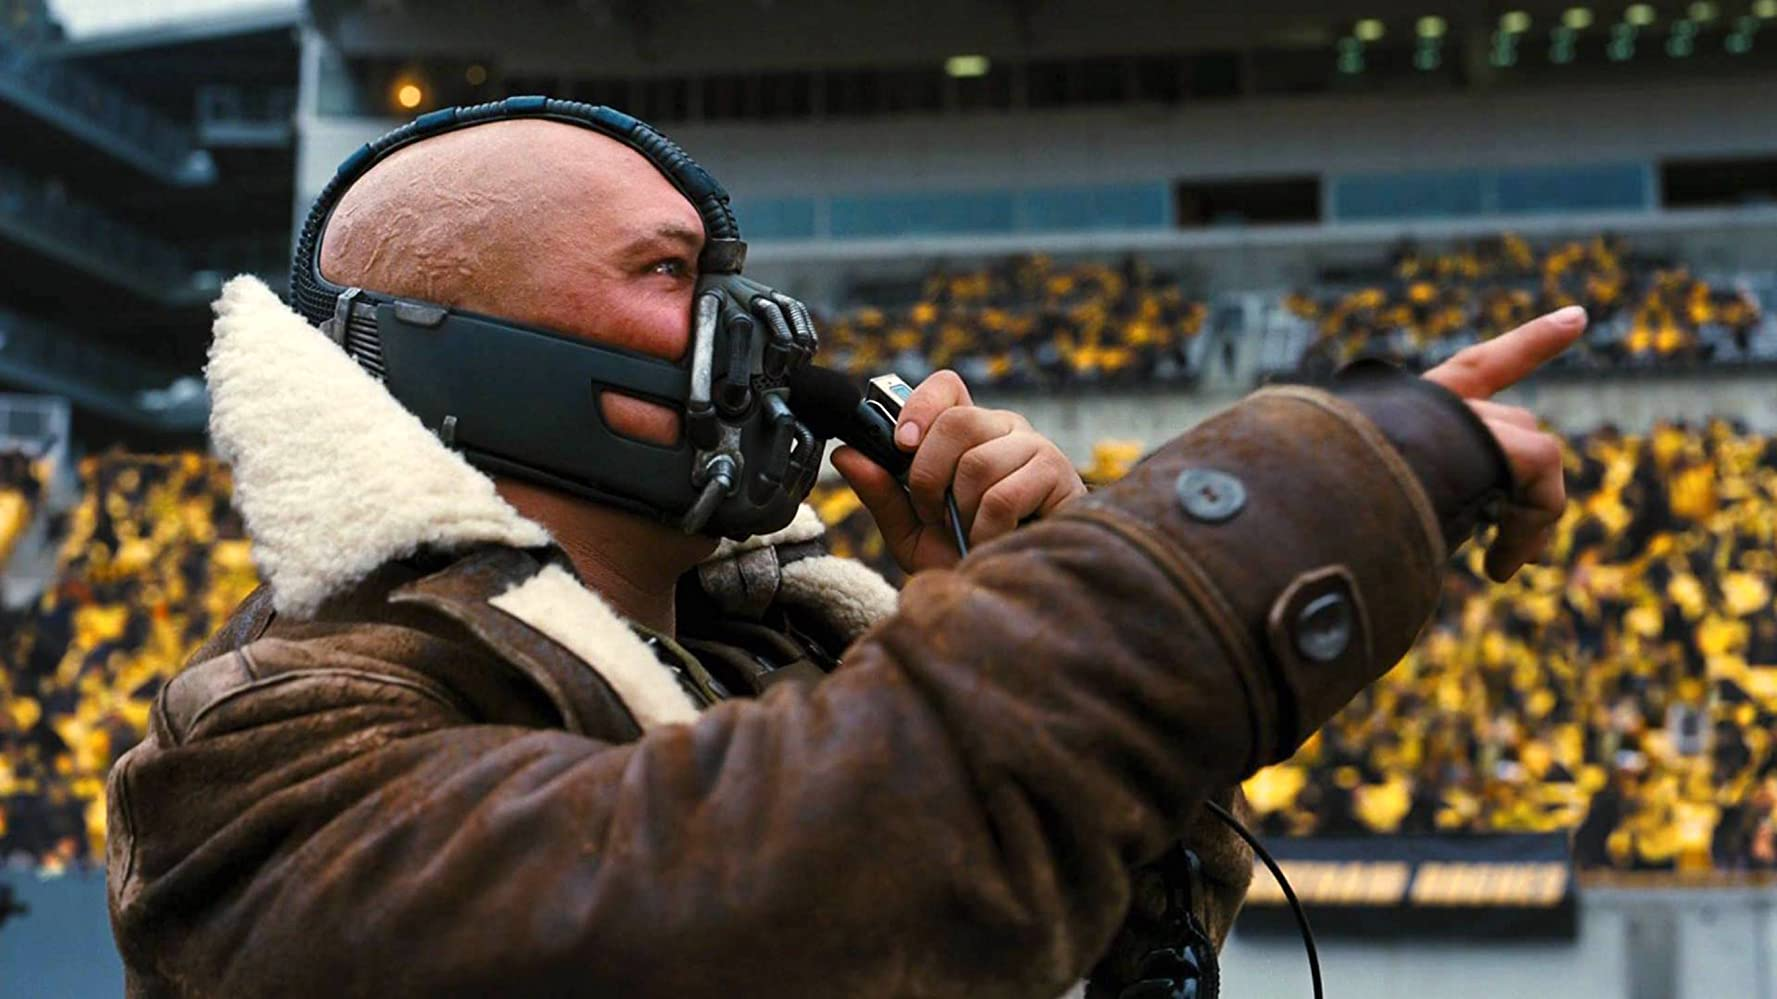 Tom Hardy in The Dark Knight Rises (2012)